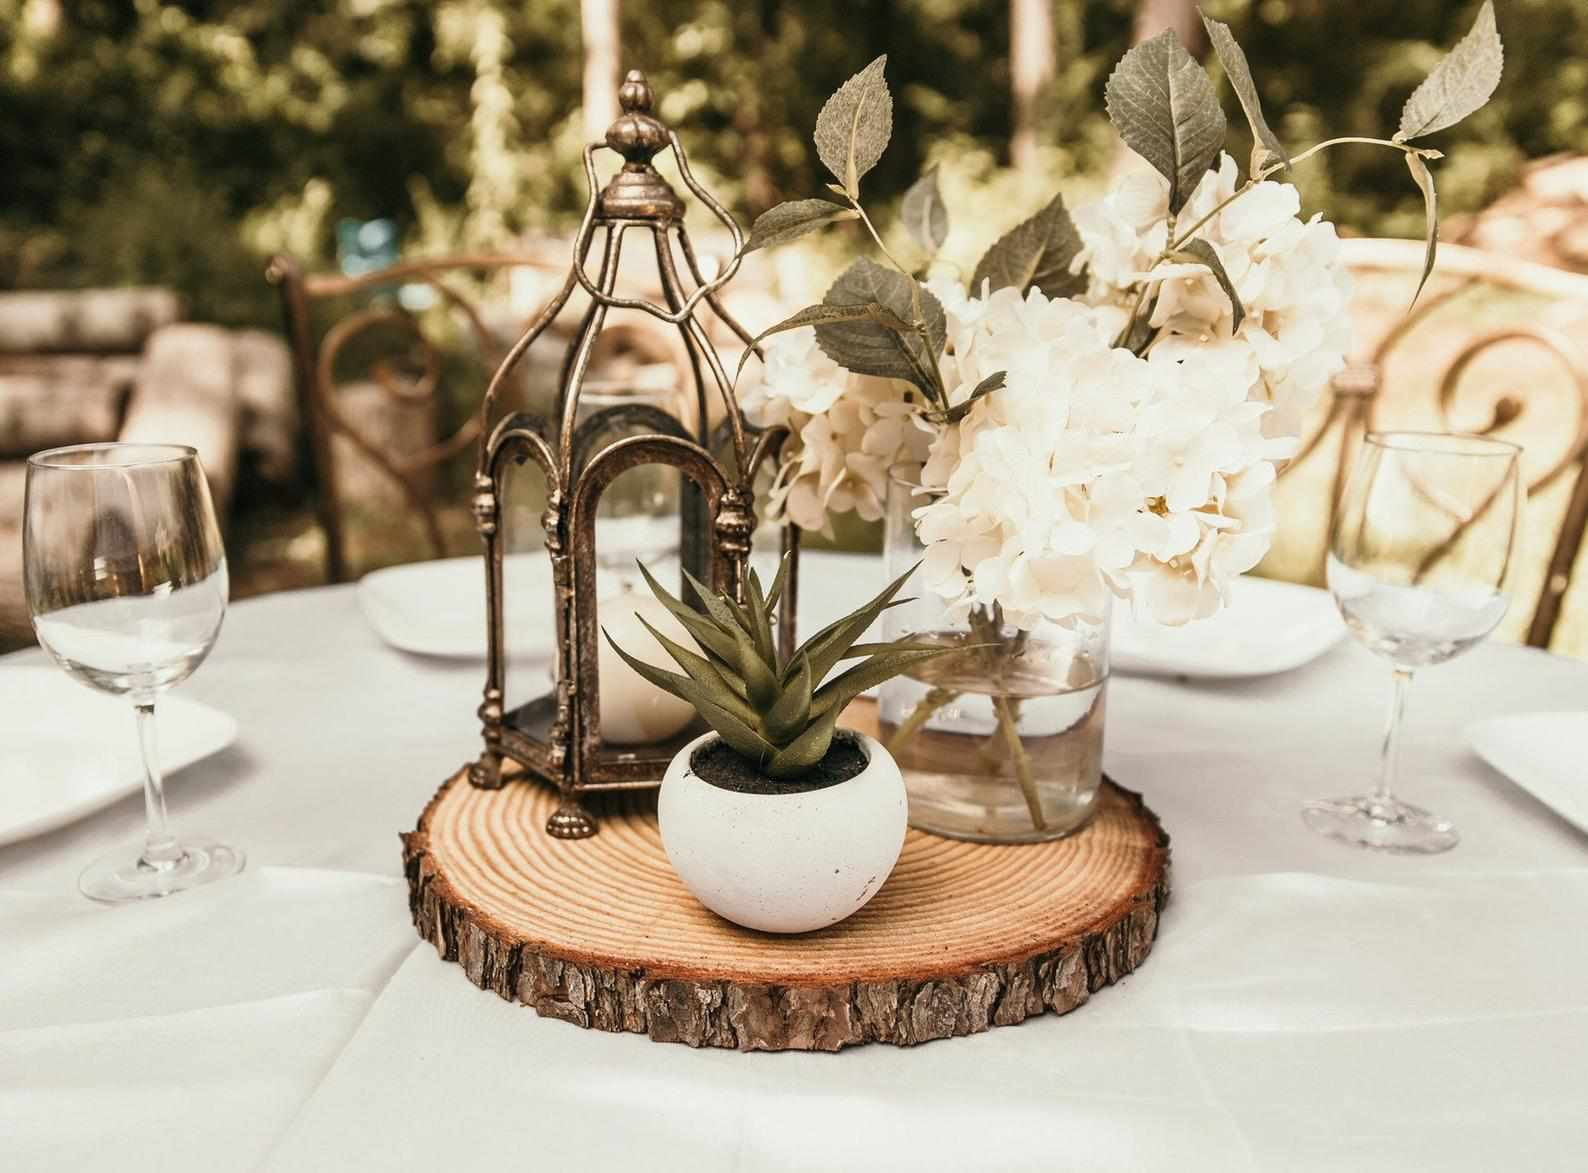 Rustic Wedding Ideas: 9 Decorations, Venue Ideas, and Pointers